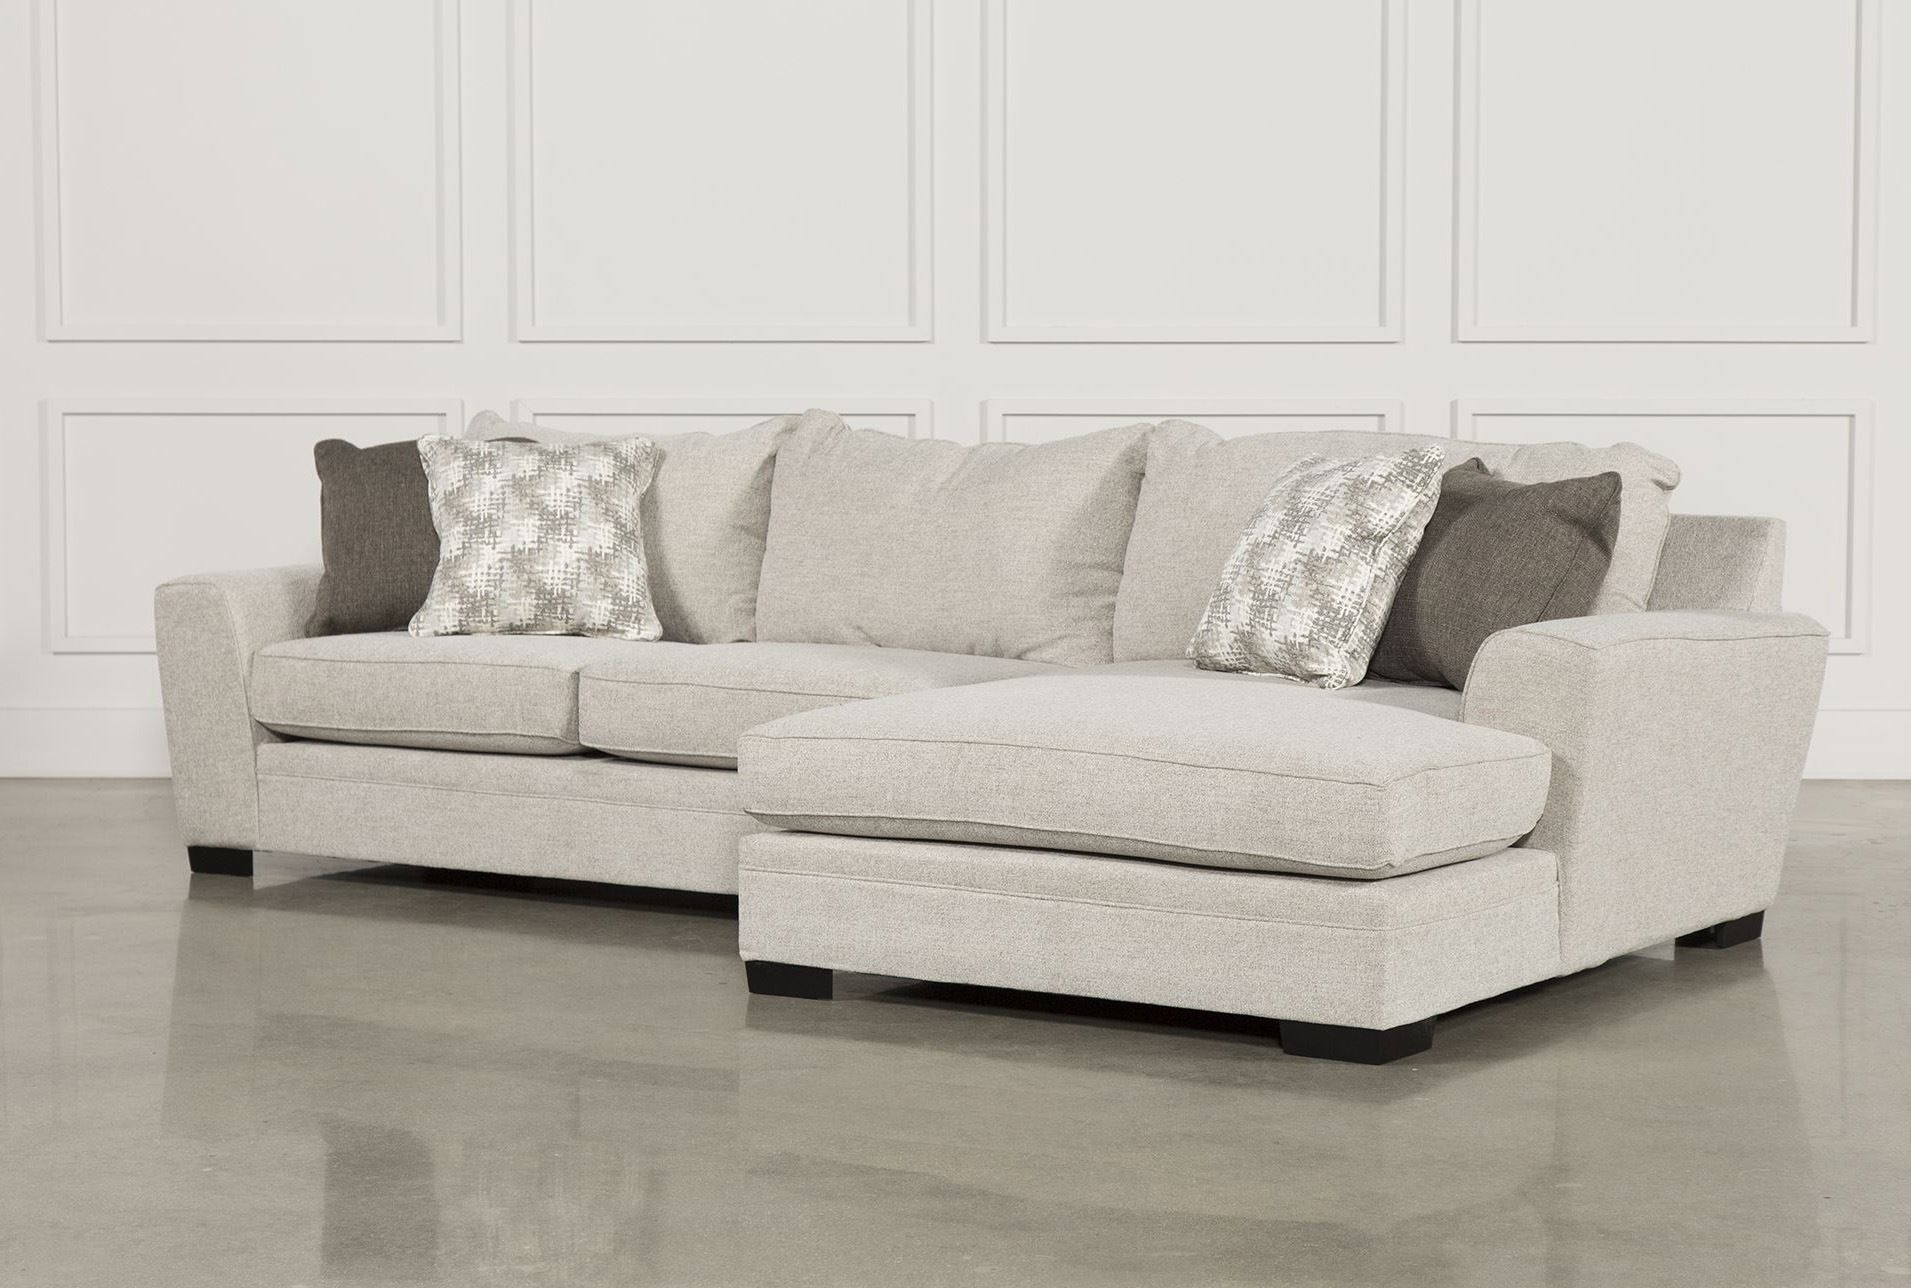 Delano 2 Piece Sectional W/raf Oversized Chaise | Furniture Within Malbry Point 3 Piece Sectionals With Laf Chaise (View 7 of 25)